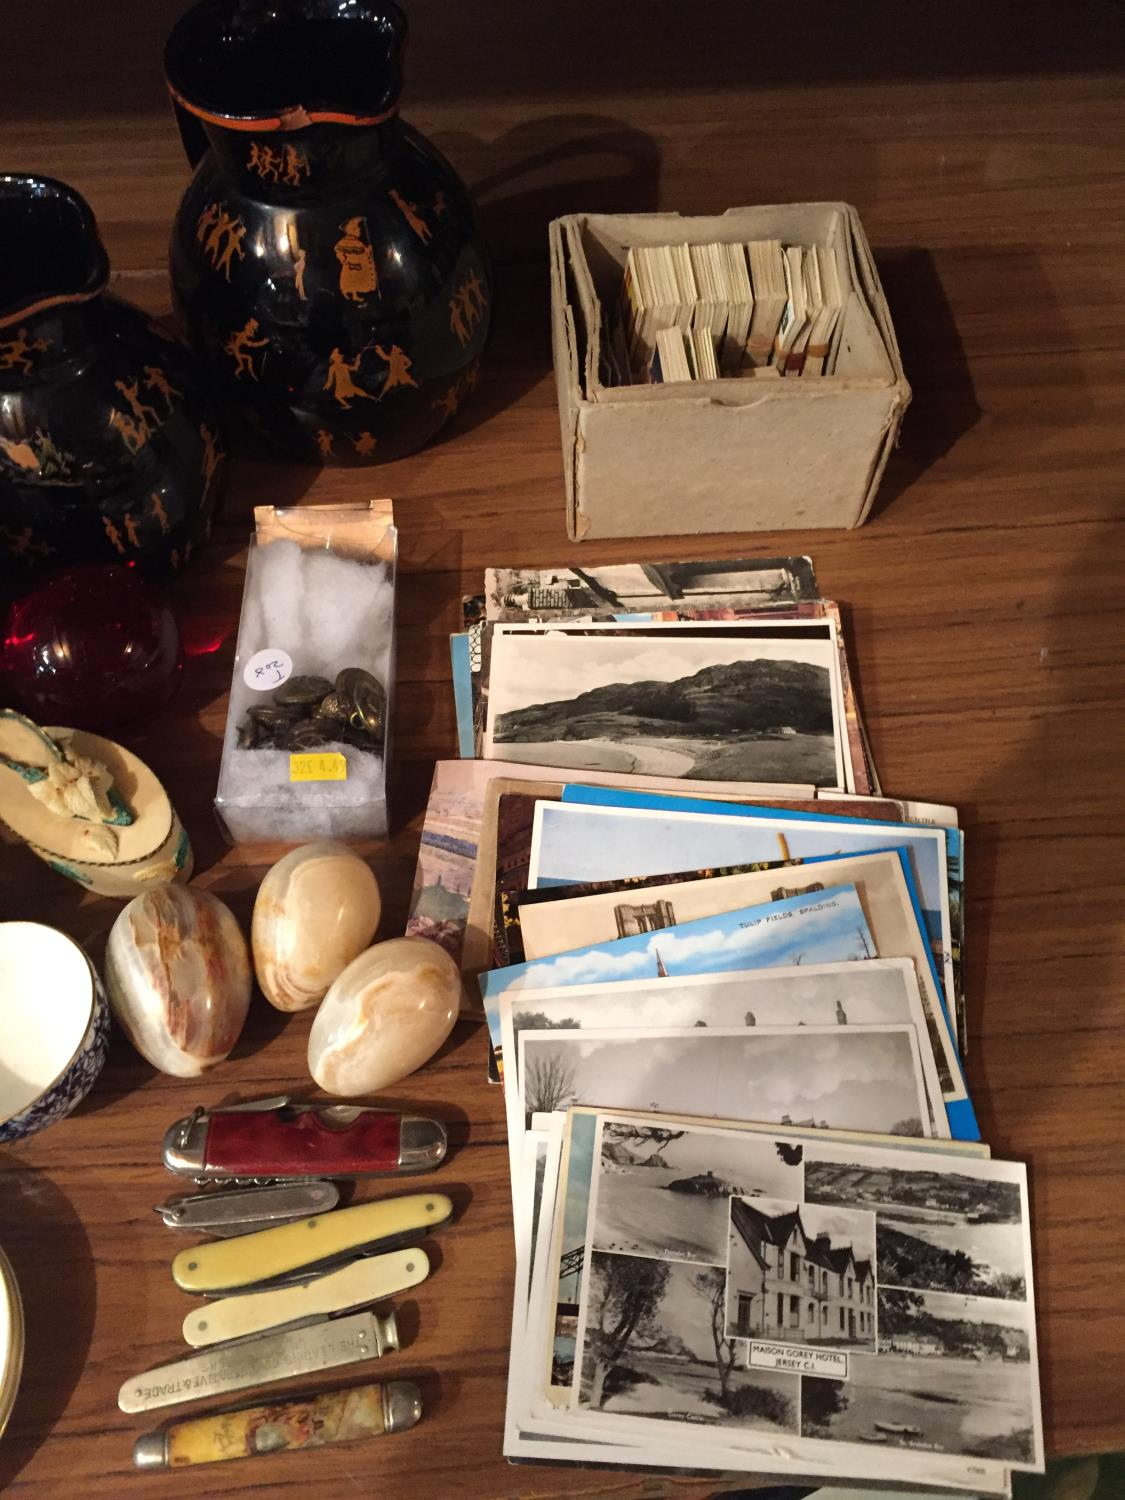 A COLLECTION OF CERAMICS TO INCLUDE BESWICK, WORCESTER PIN TRAYS CIGARETTE CARDS, POSTCARDS ETC - Image 7 of 10